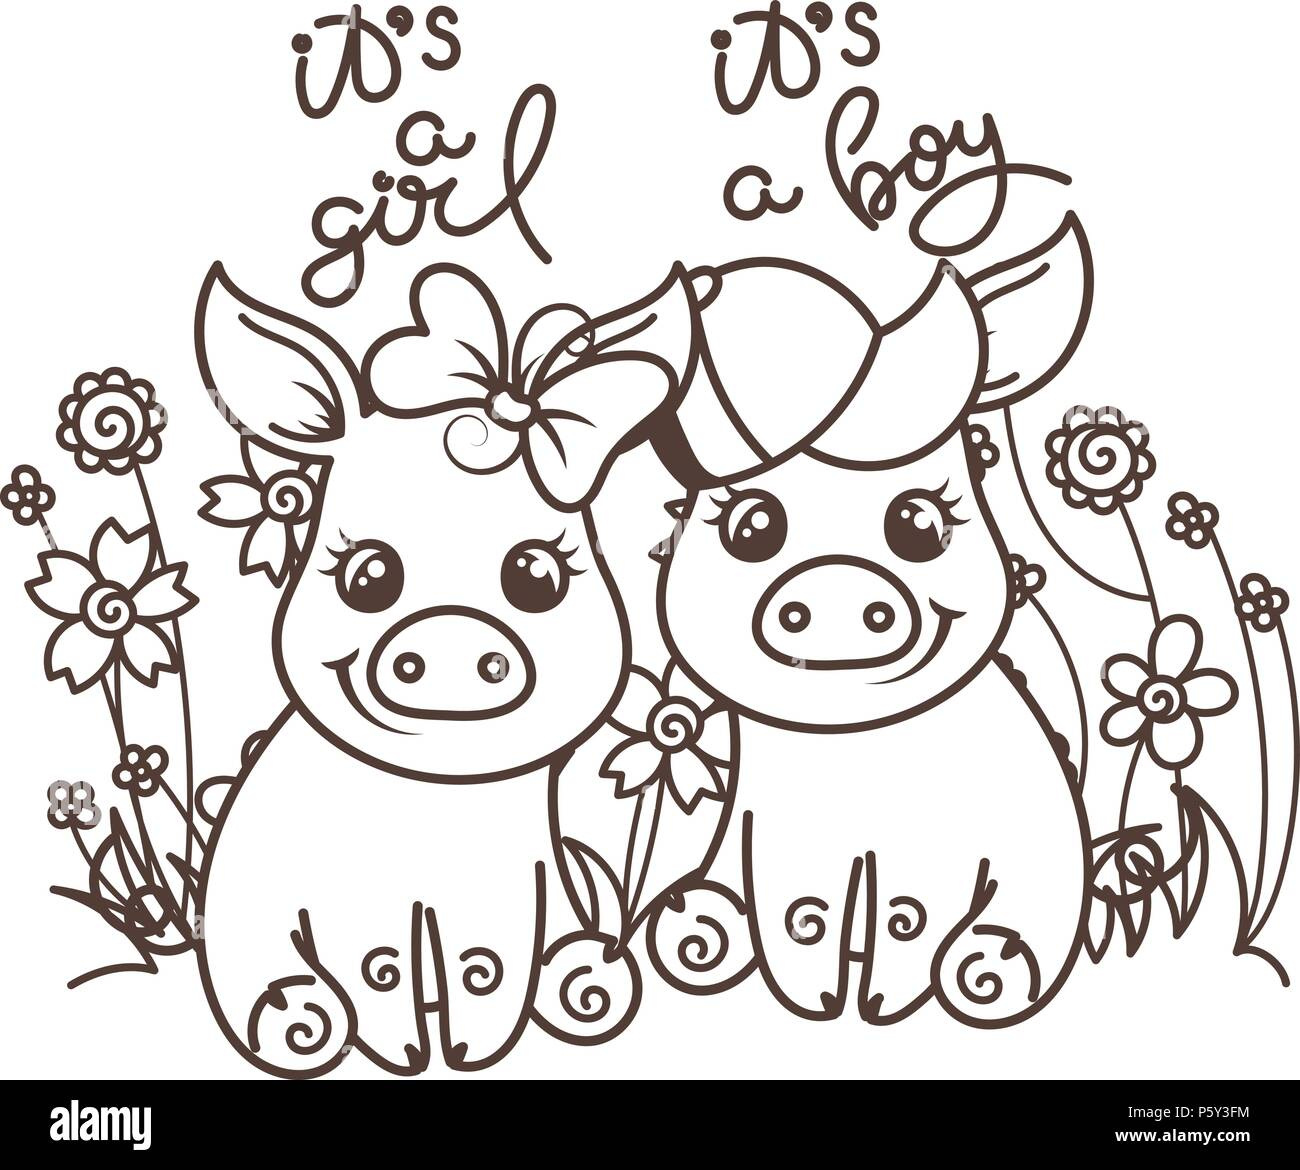 Coloring Pages For Girls Flowers - Coloring Home | 1170x1300